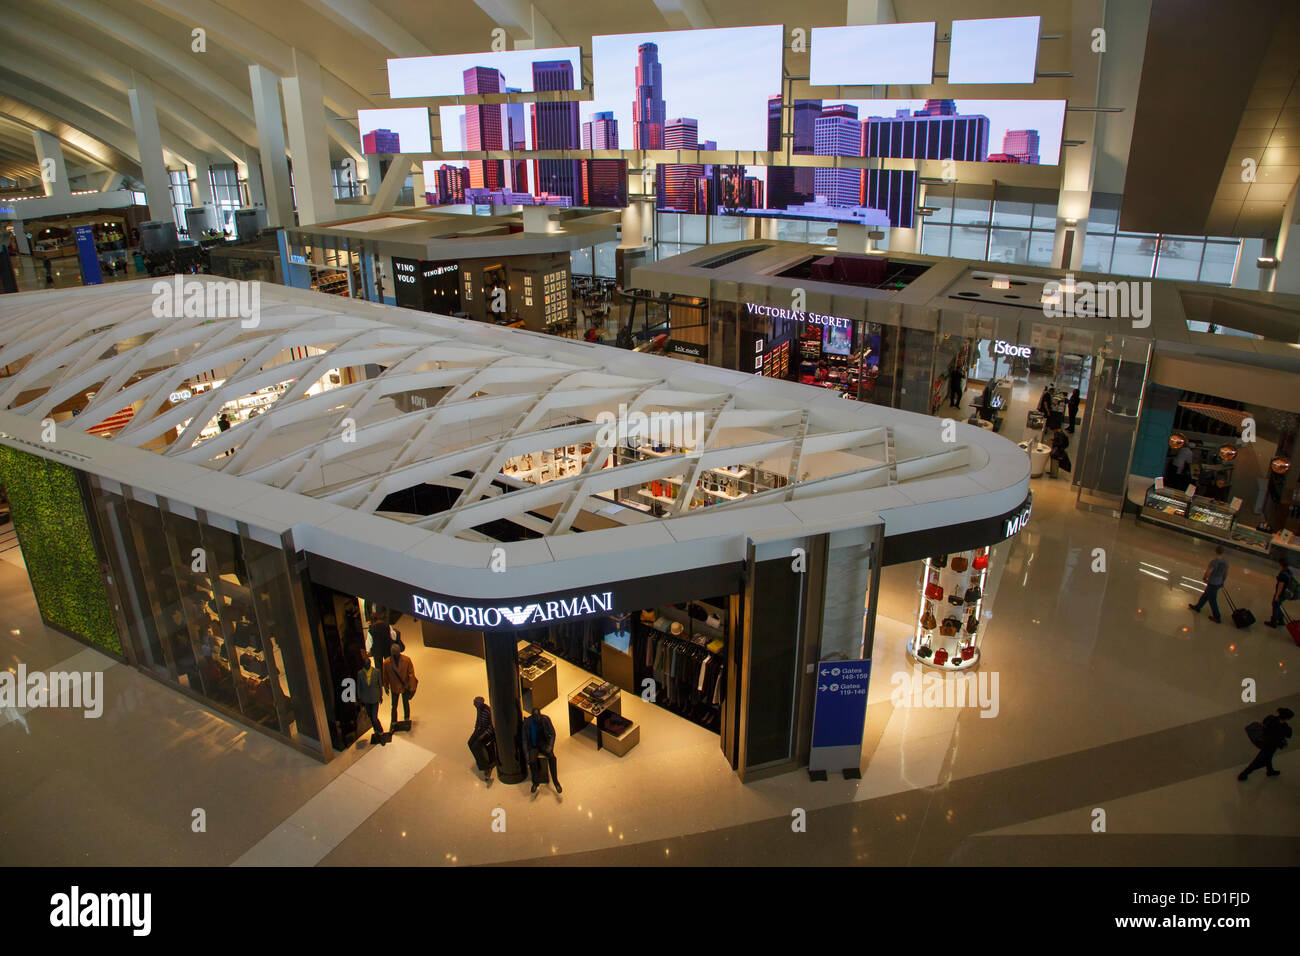 Tom Bradley International Terminal at LAX, Los Angeles, California. - Stock Image